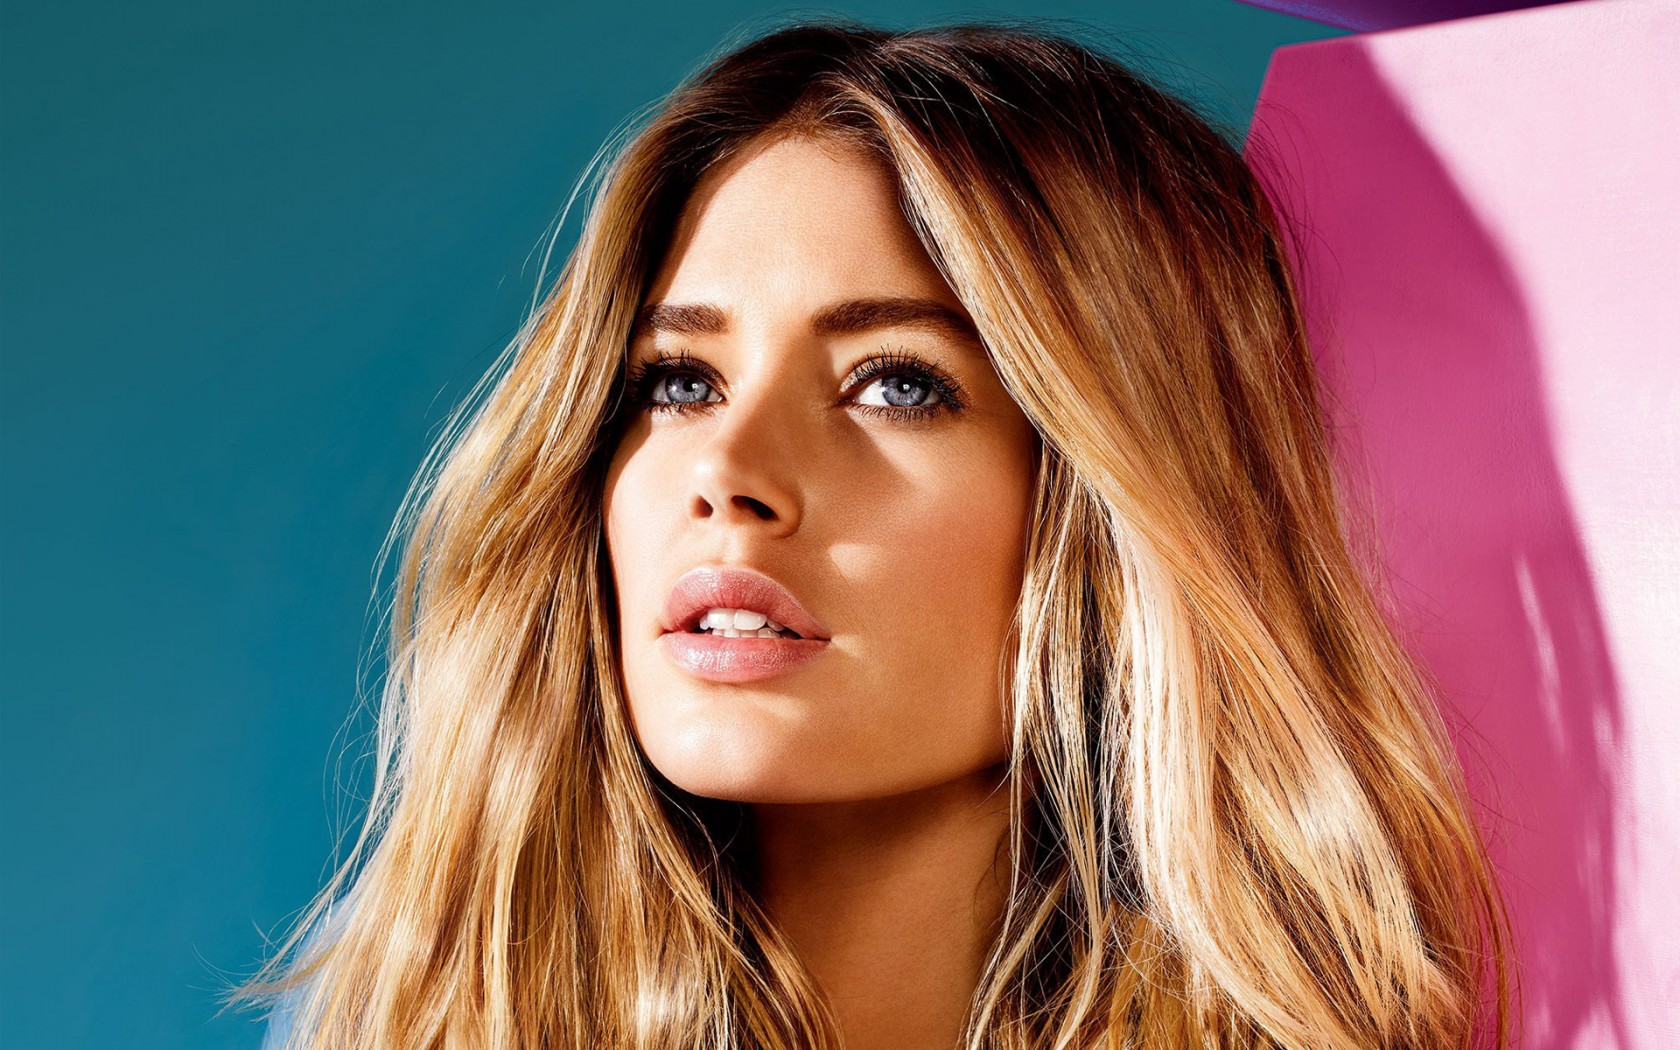 Cute Girl Pictures Wallpapers Doutzen Kroes Dutch Model Wallpapers Hd Wallpapers Id